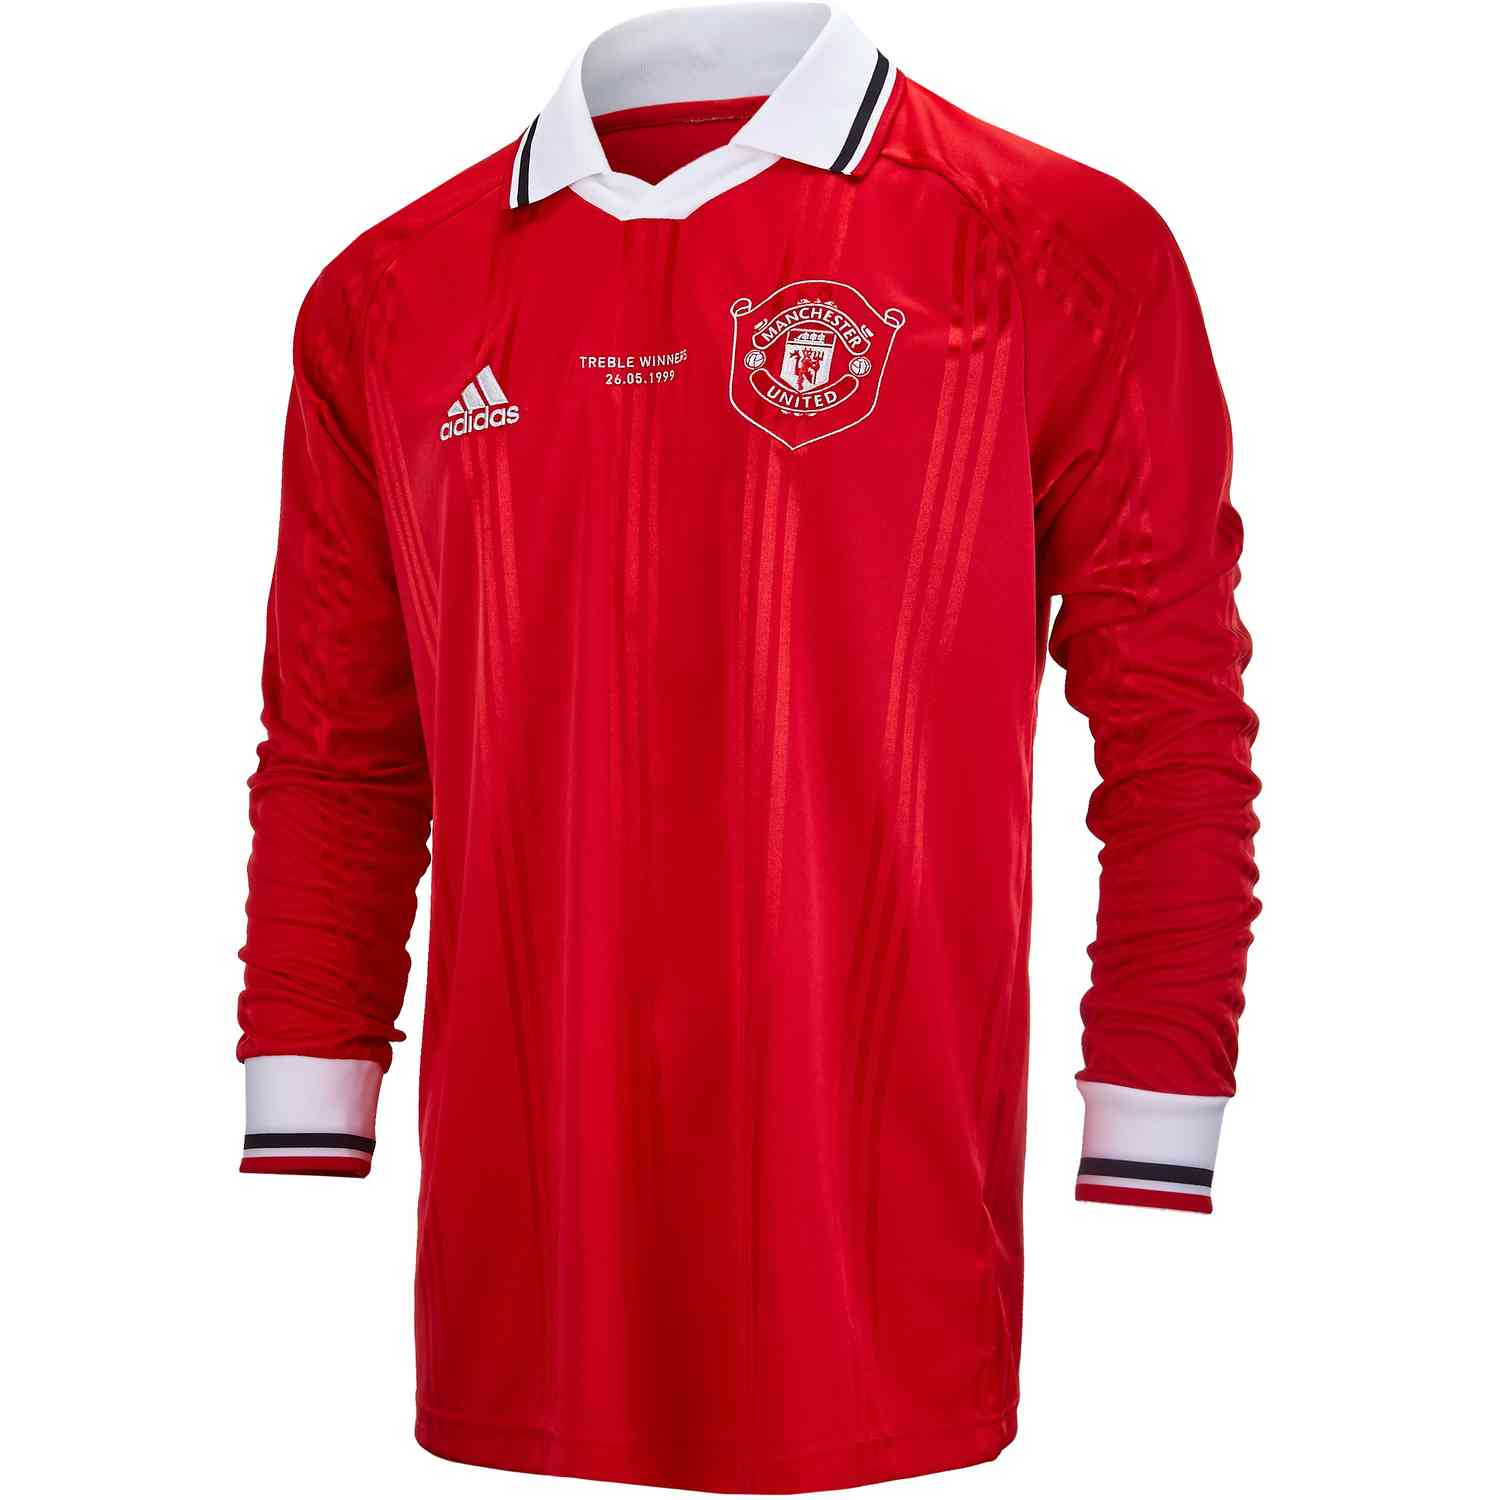 Adidas Manchester United L S Retro Jersey Real Red